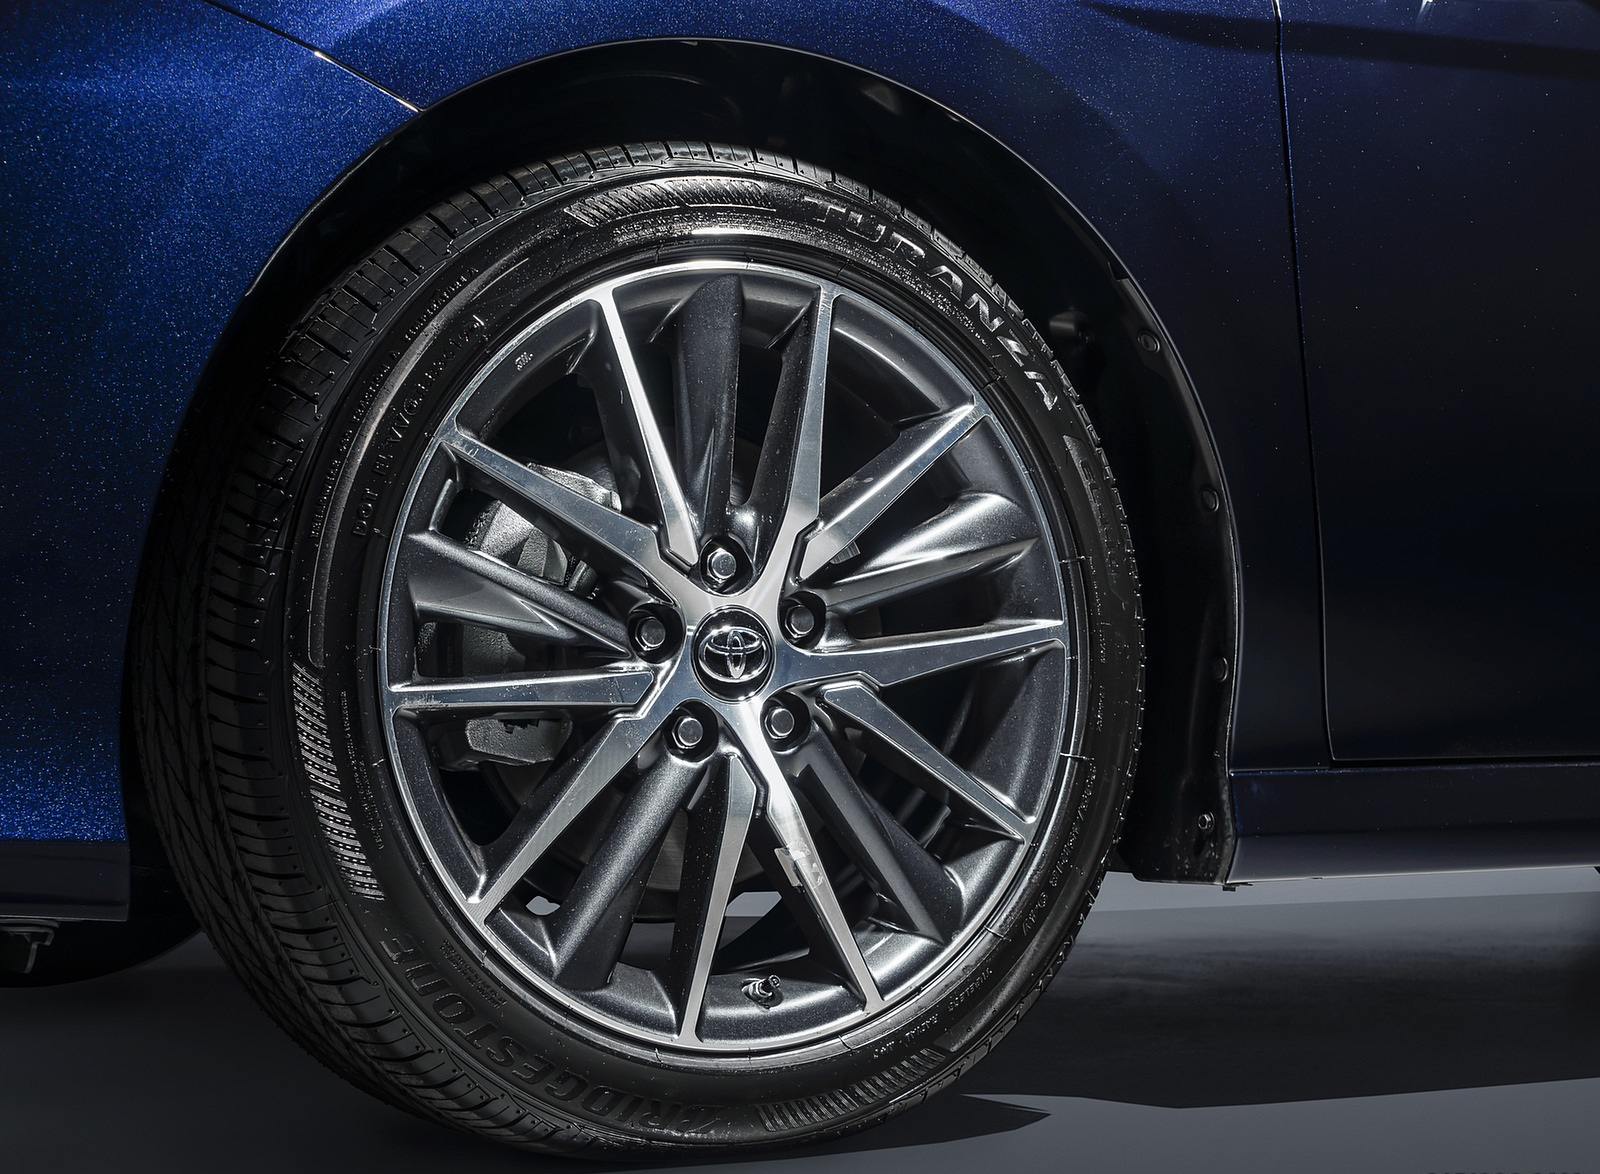 2021 Toyota Camry XLE Wheel Wallpapers (7)